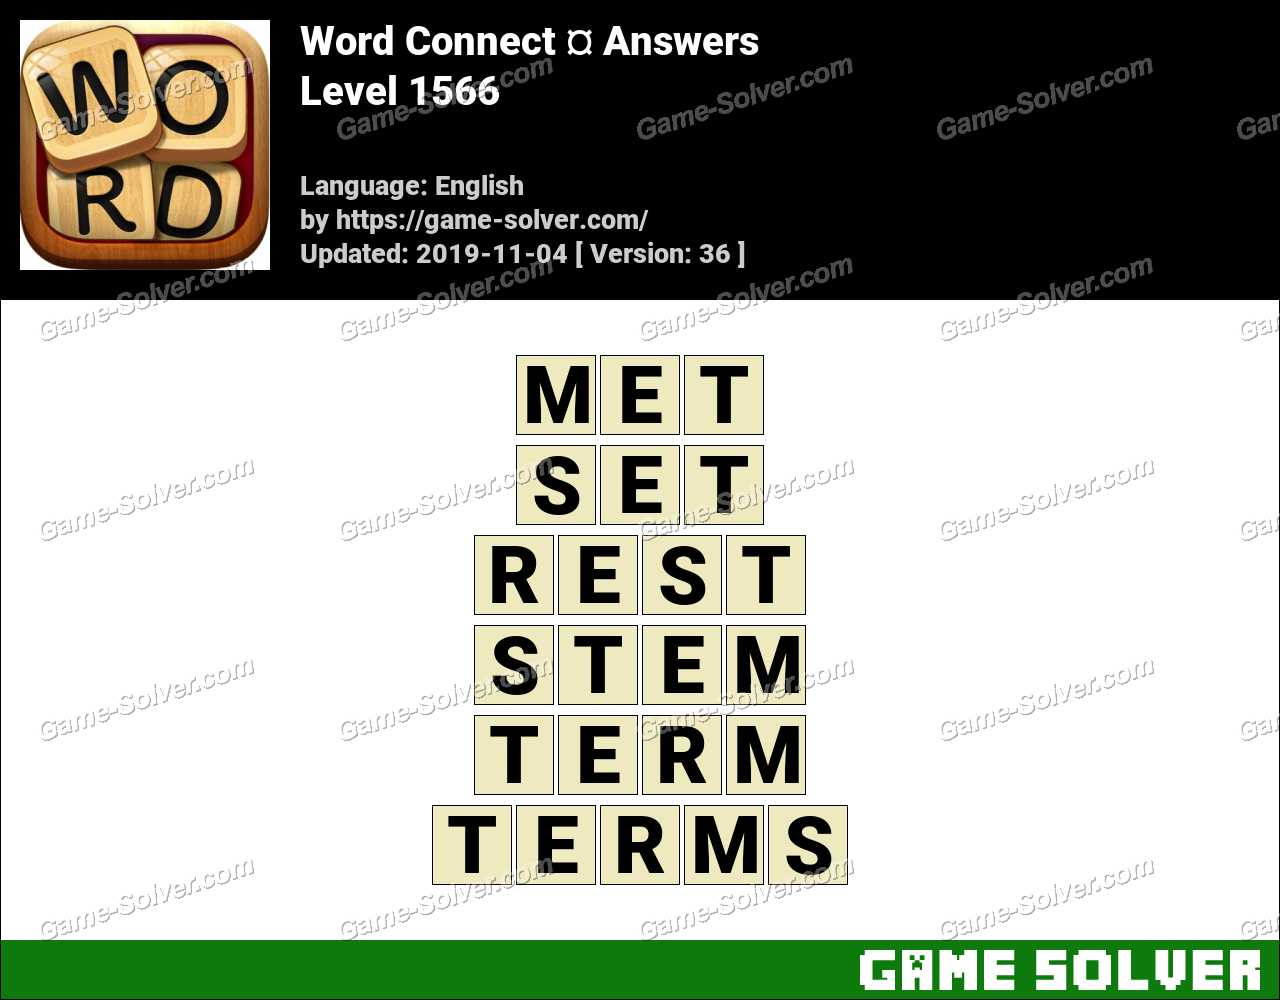 Word Connect Level 1566 Answers